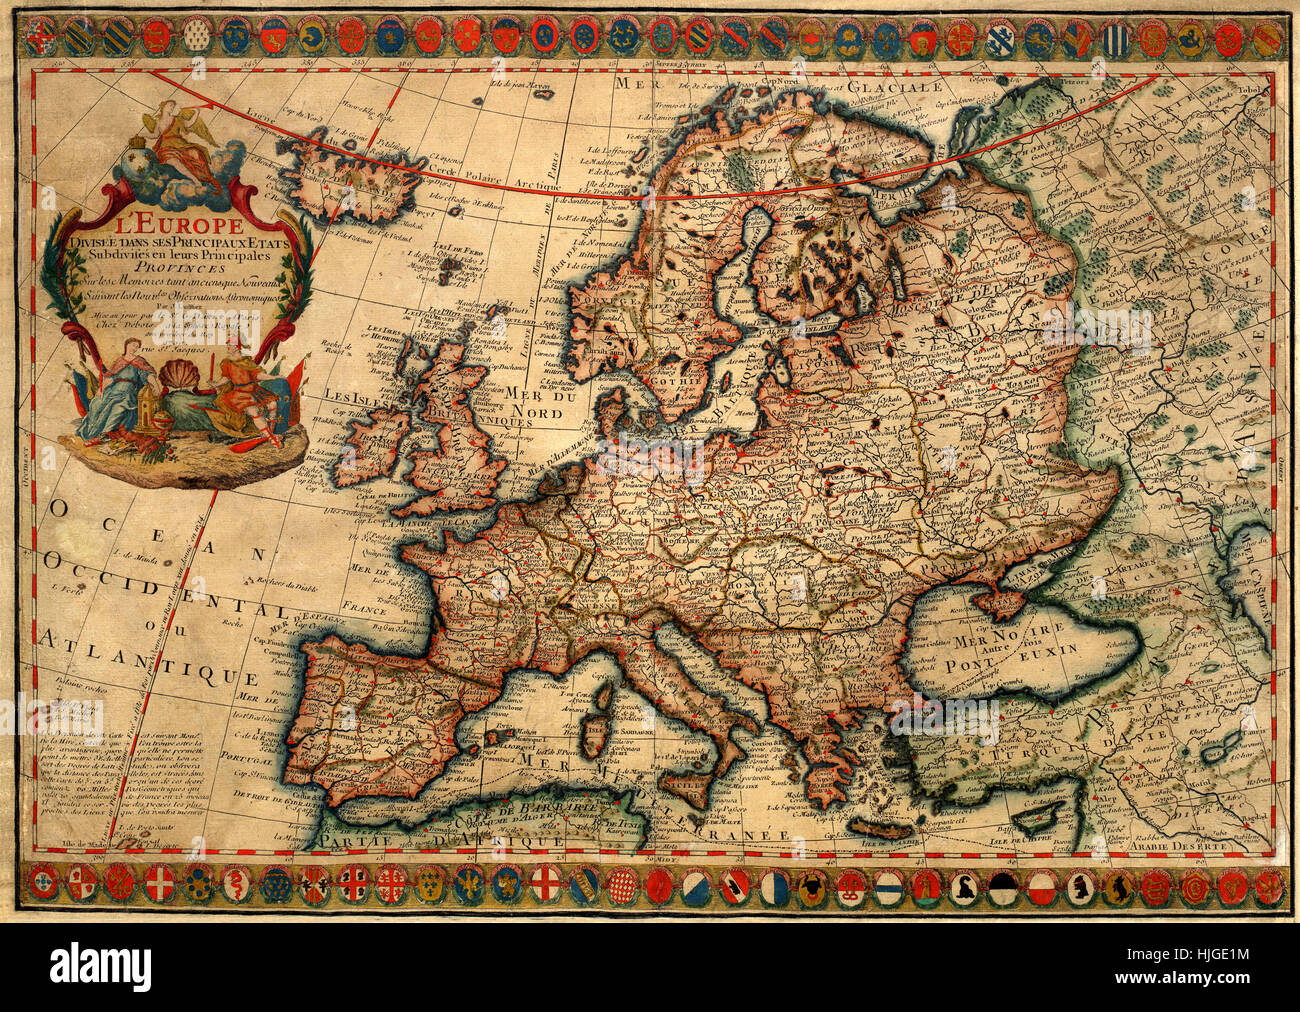 Map Of Europe 1700 Stock Photo: 131898640   Alamy